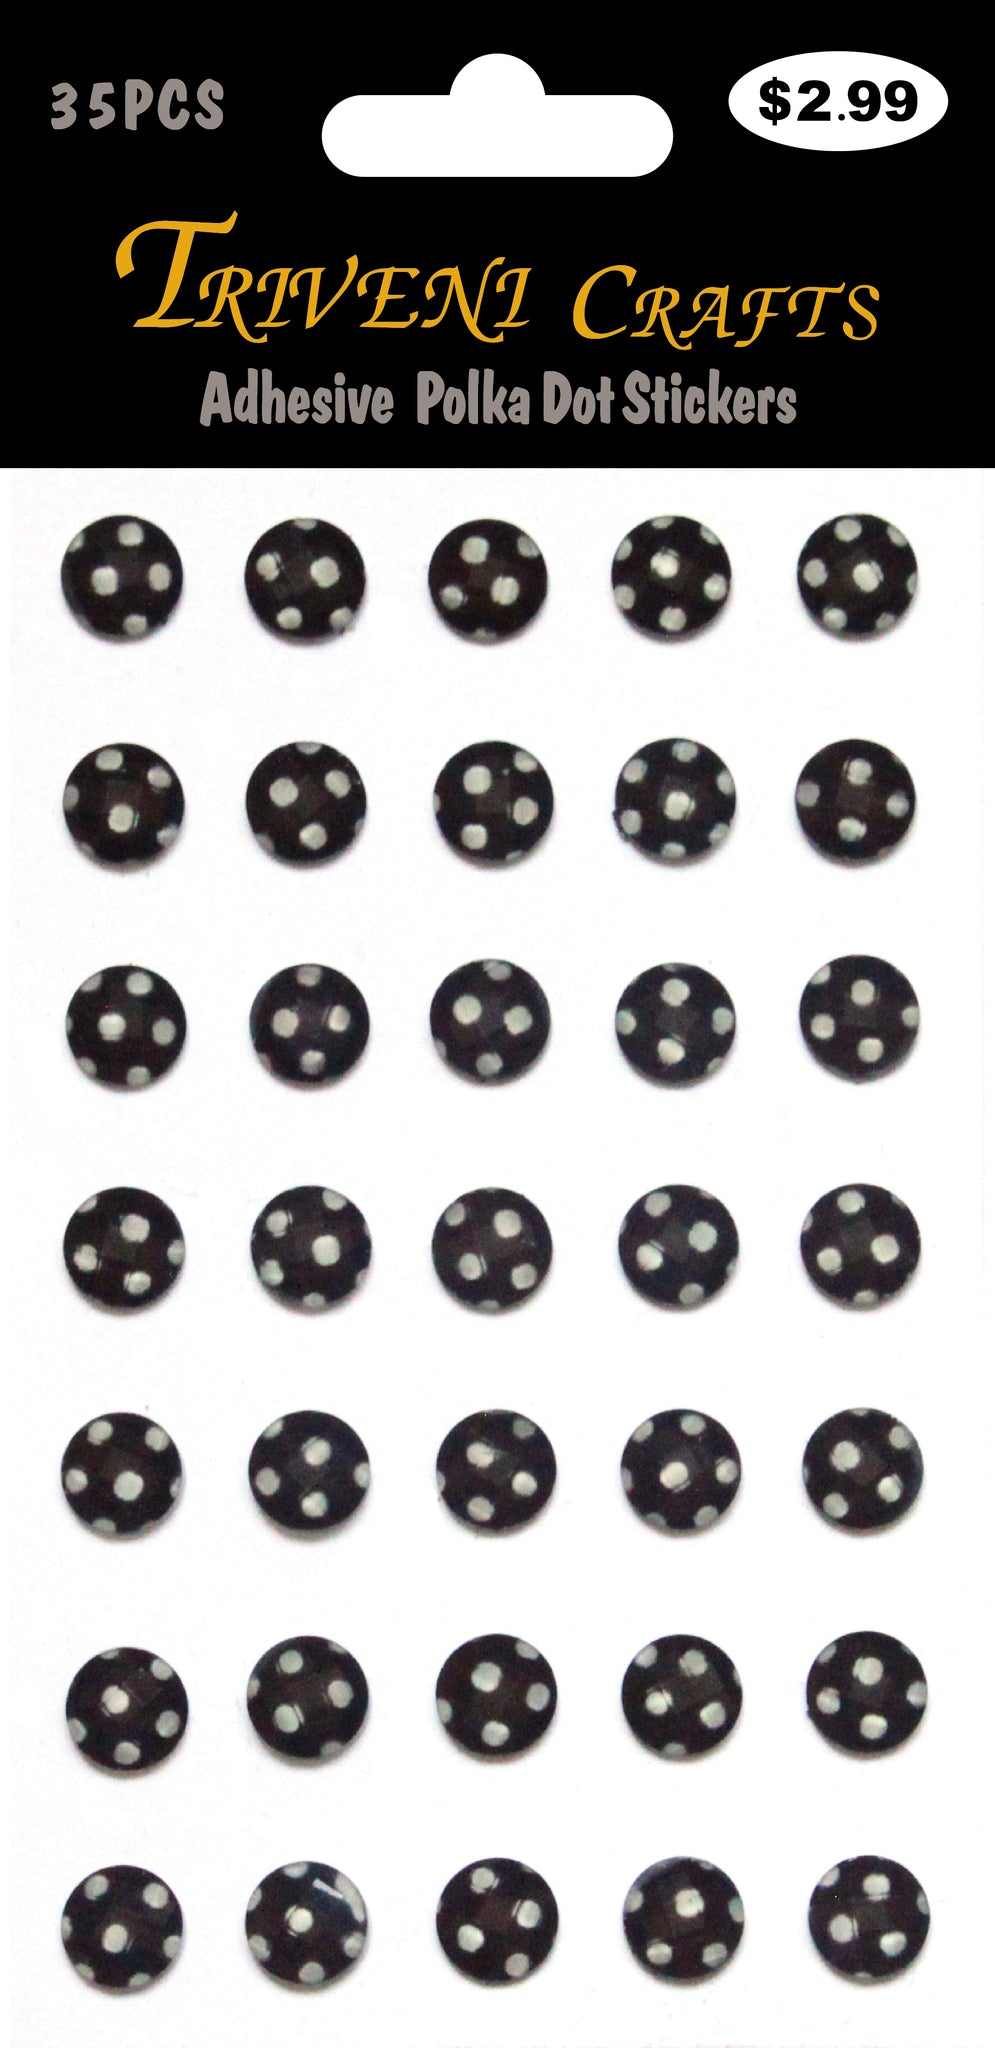 Adhesive  Polka Dot Stickers